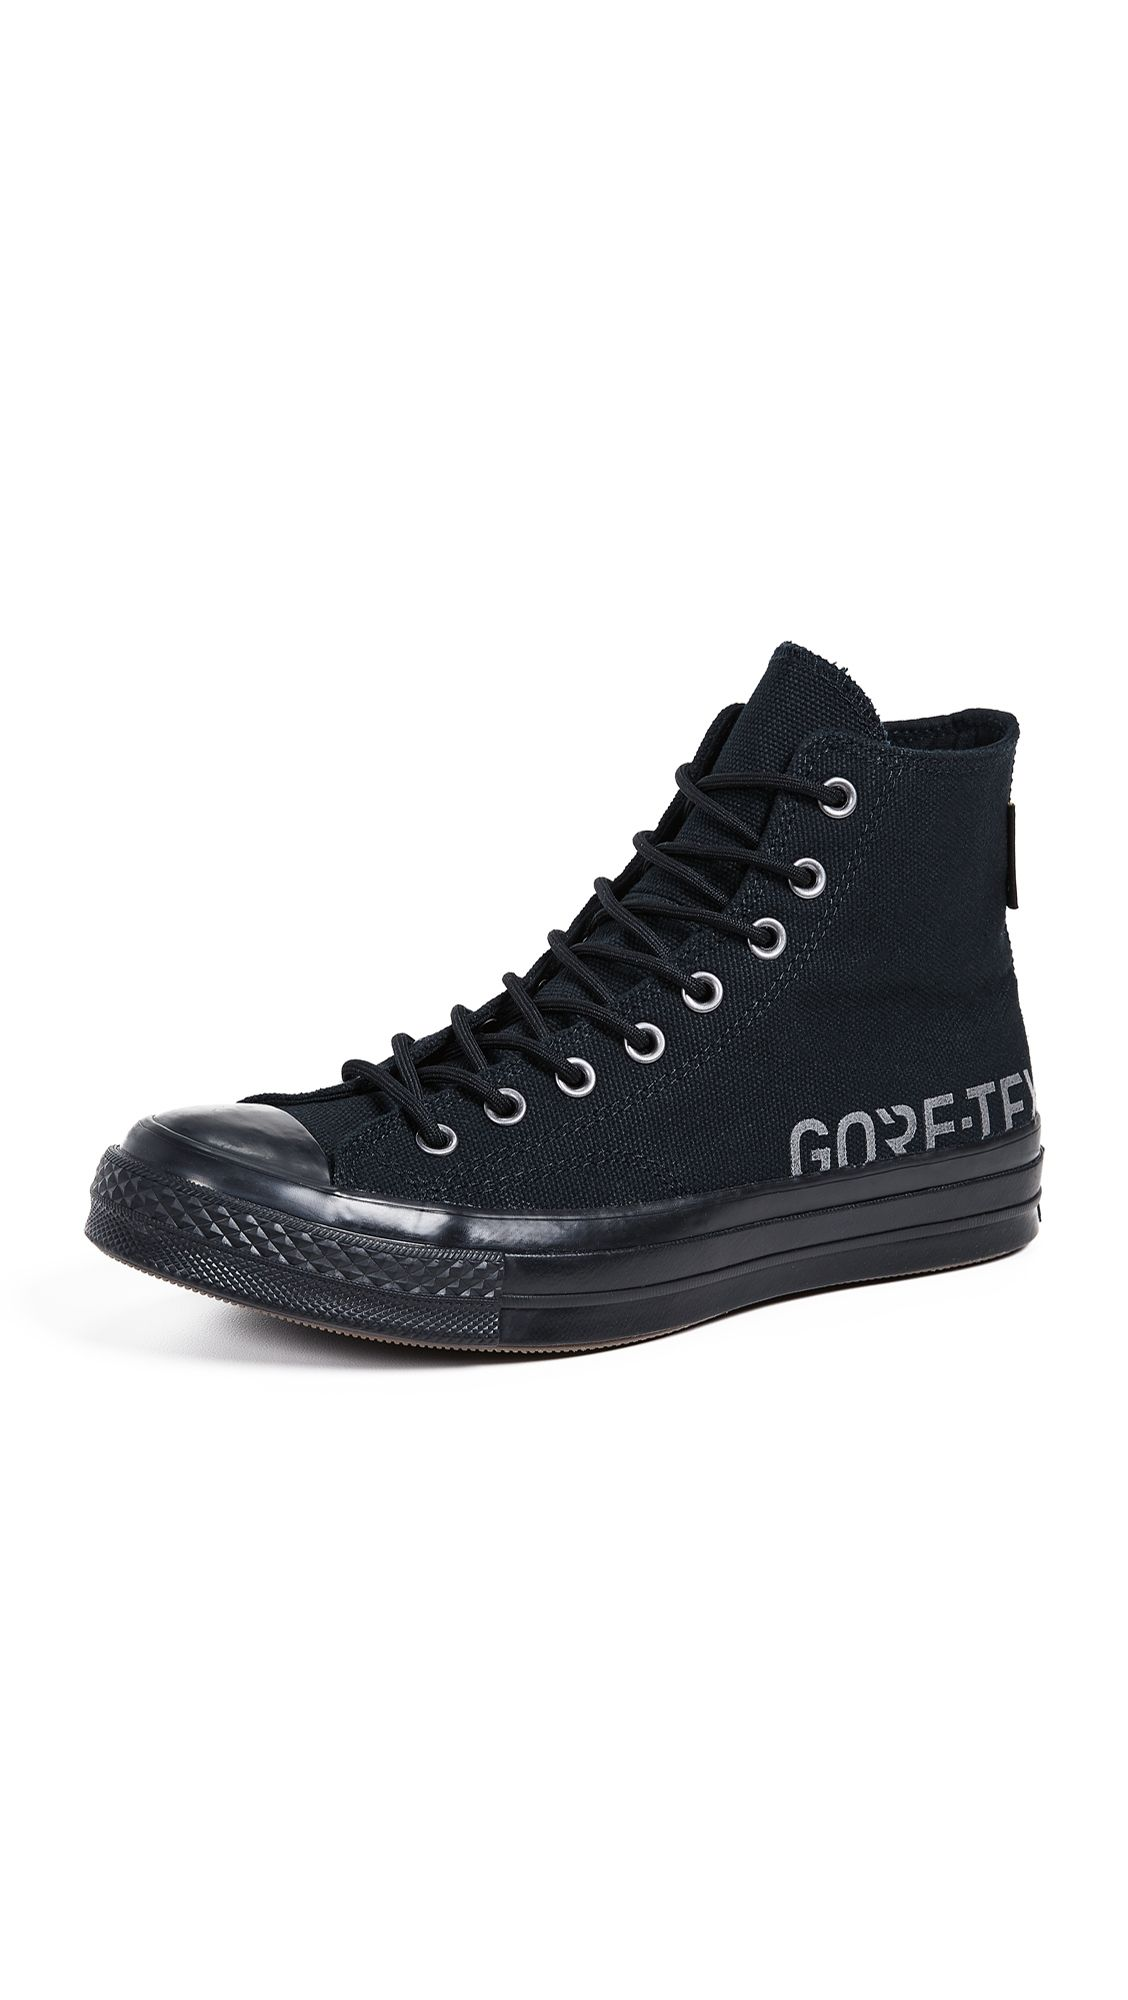 a4ea43f88d6b CONVERSE CHUCK 70 GORETEX WATERPROOF HIGH TOP SNEAKERS.  converse  shoes